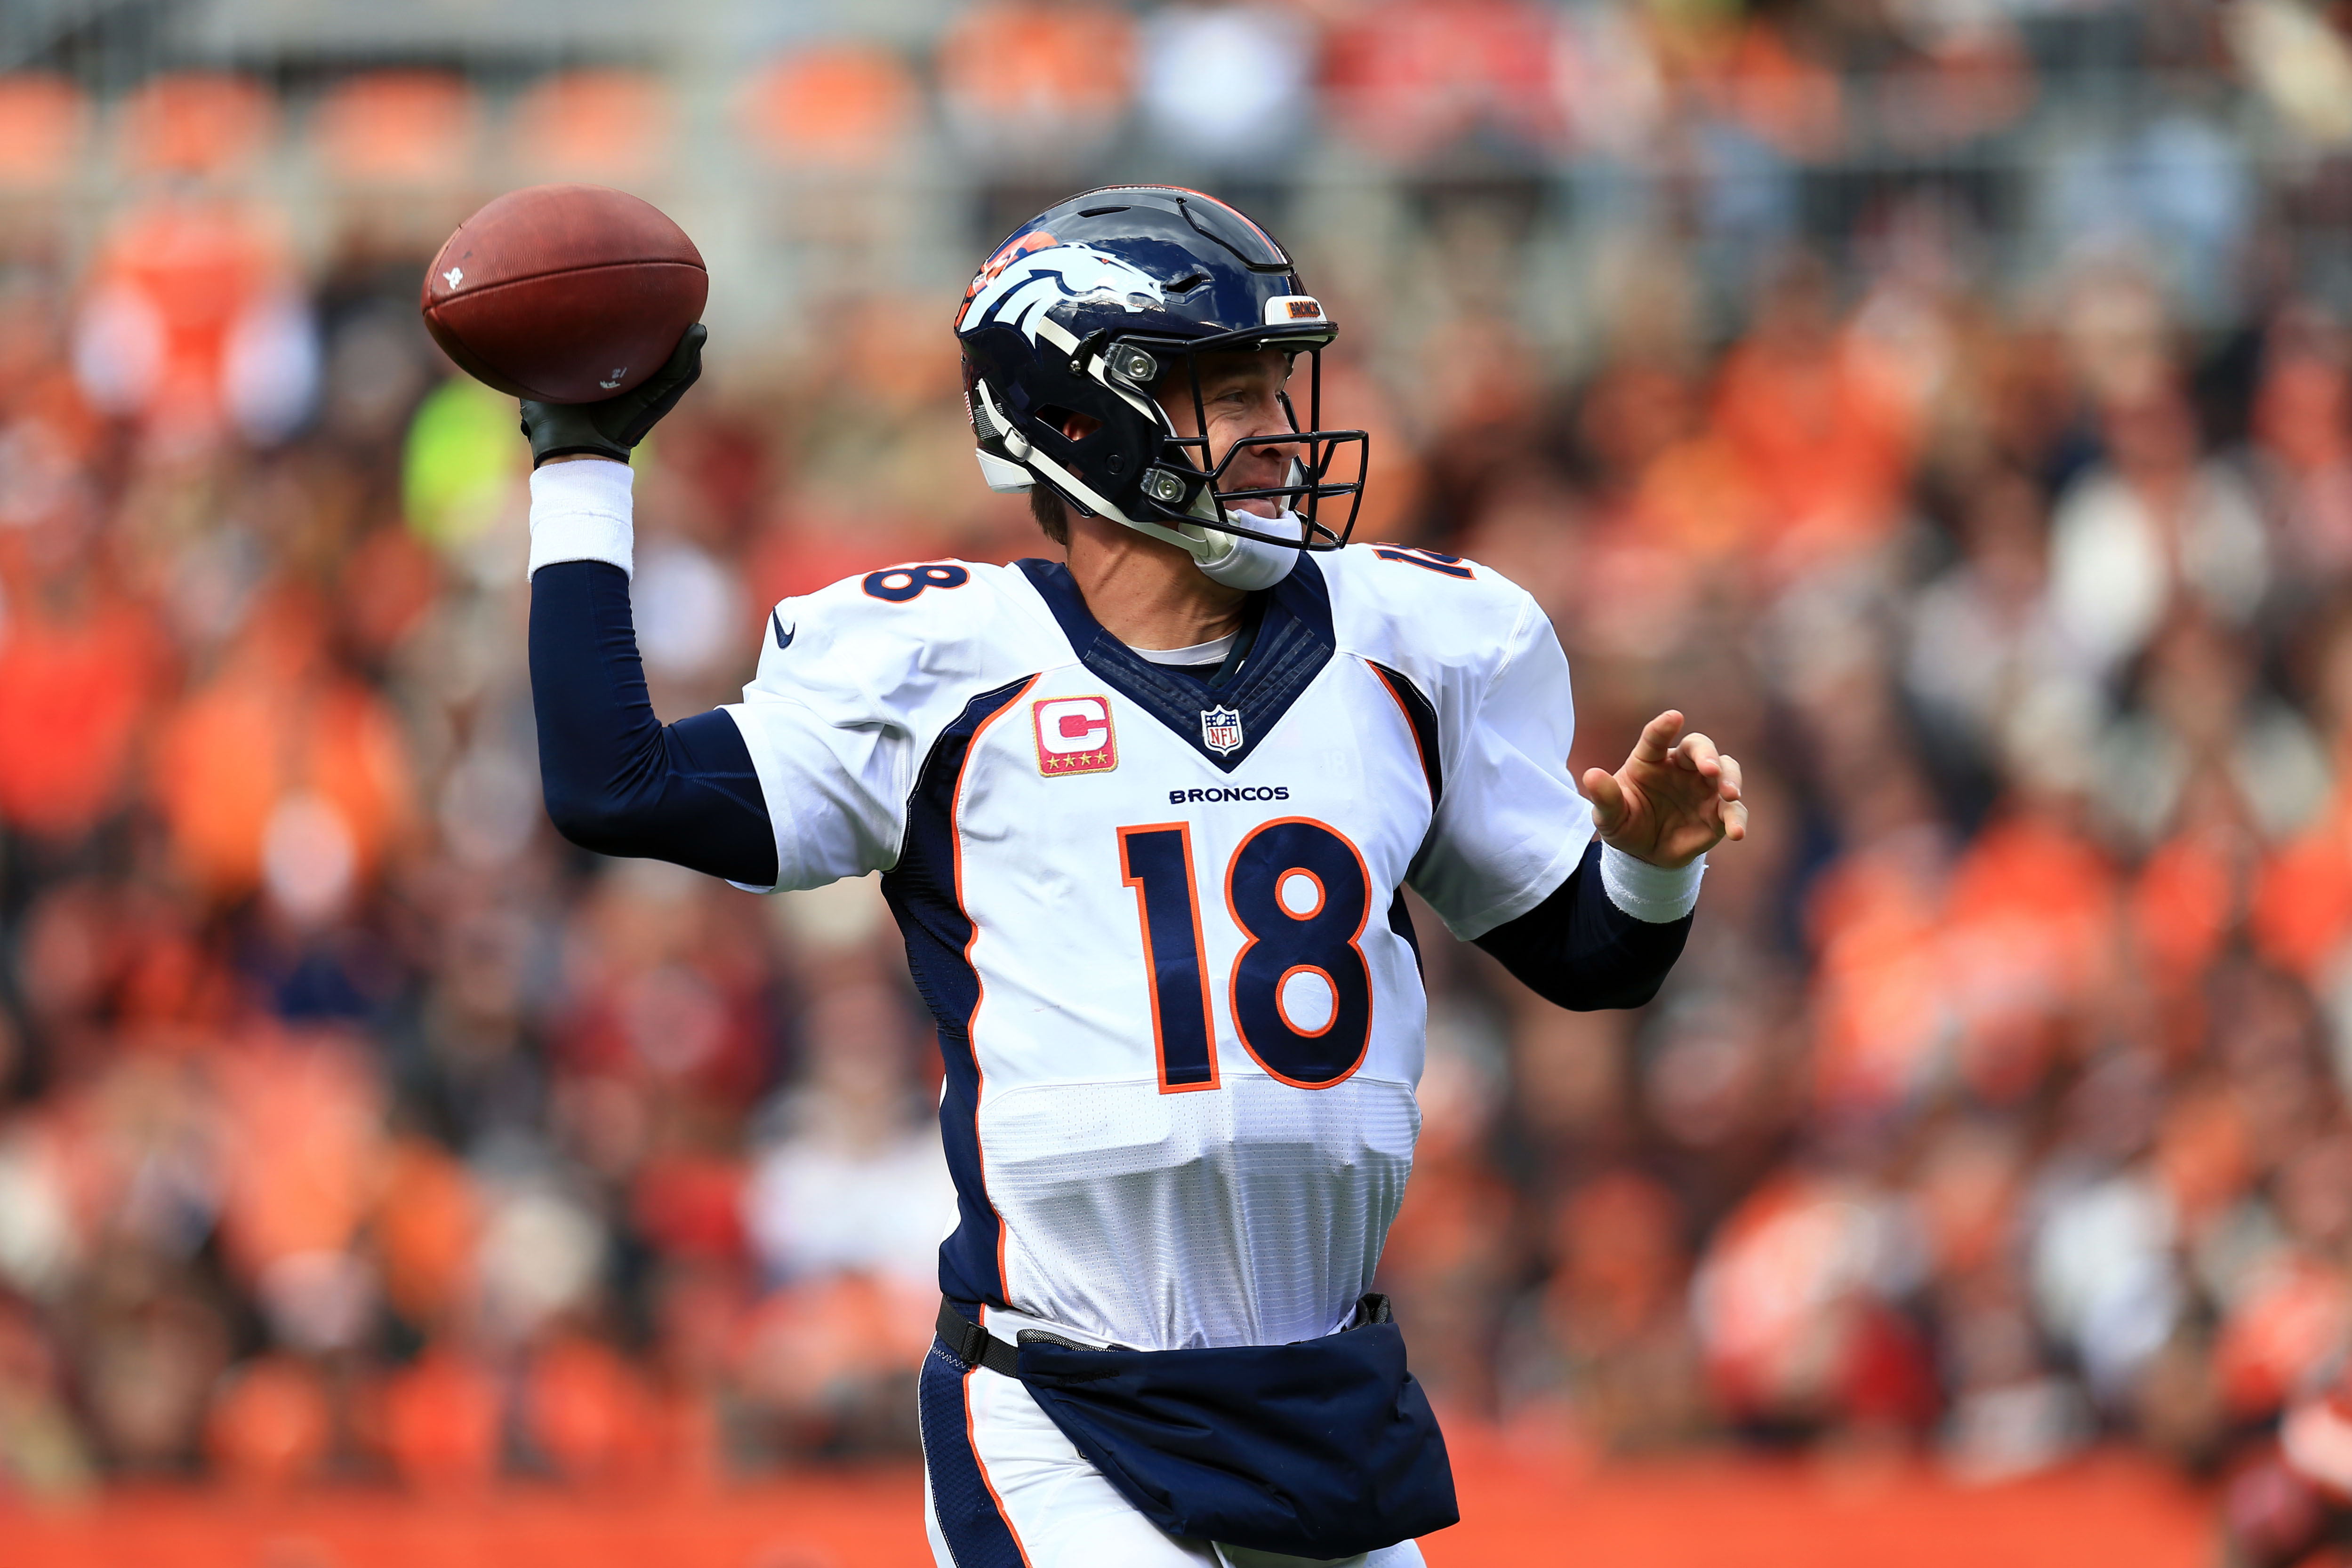 CLEVELAND, OH - OCTOBER 18: Quarterback Peyton Manning #18 of the Denver Broncos throws a pass during the first quarter against the Cleveland Browns at Cleveland Browns Stadium on October 18, 2015 in Cleveland, Ohio. (Photo by Andrew Weber/Getty Images)